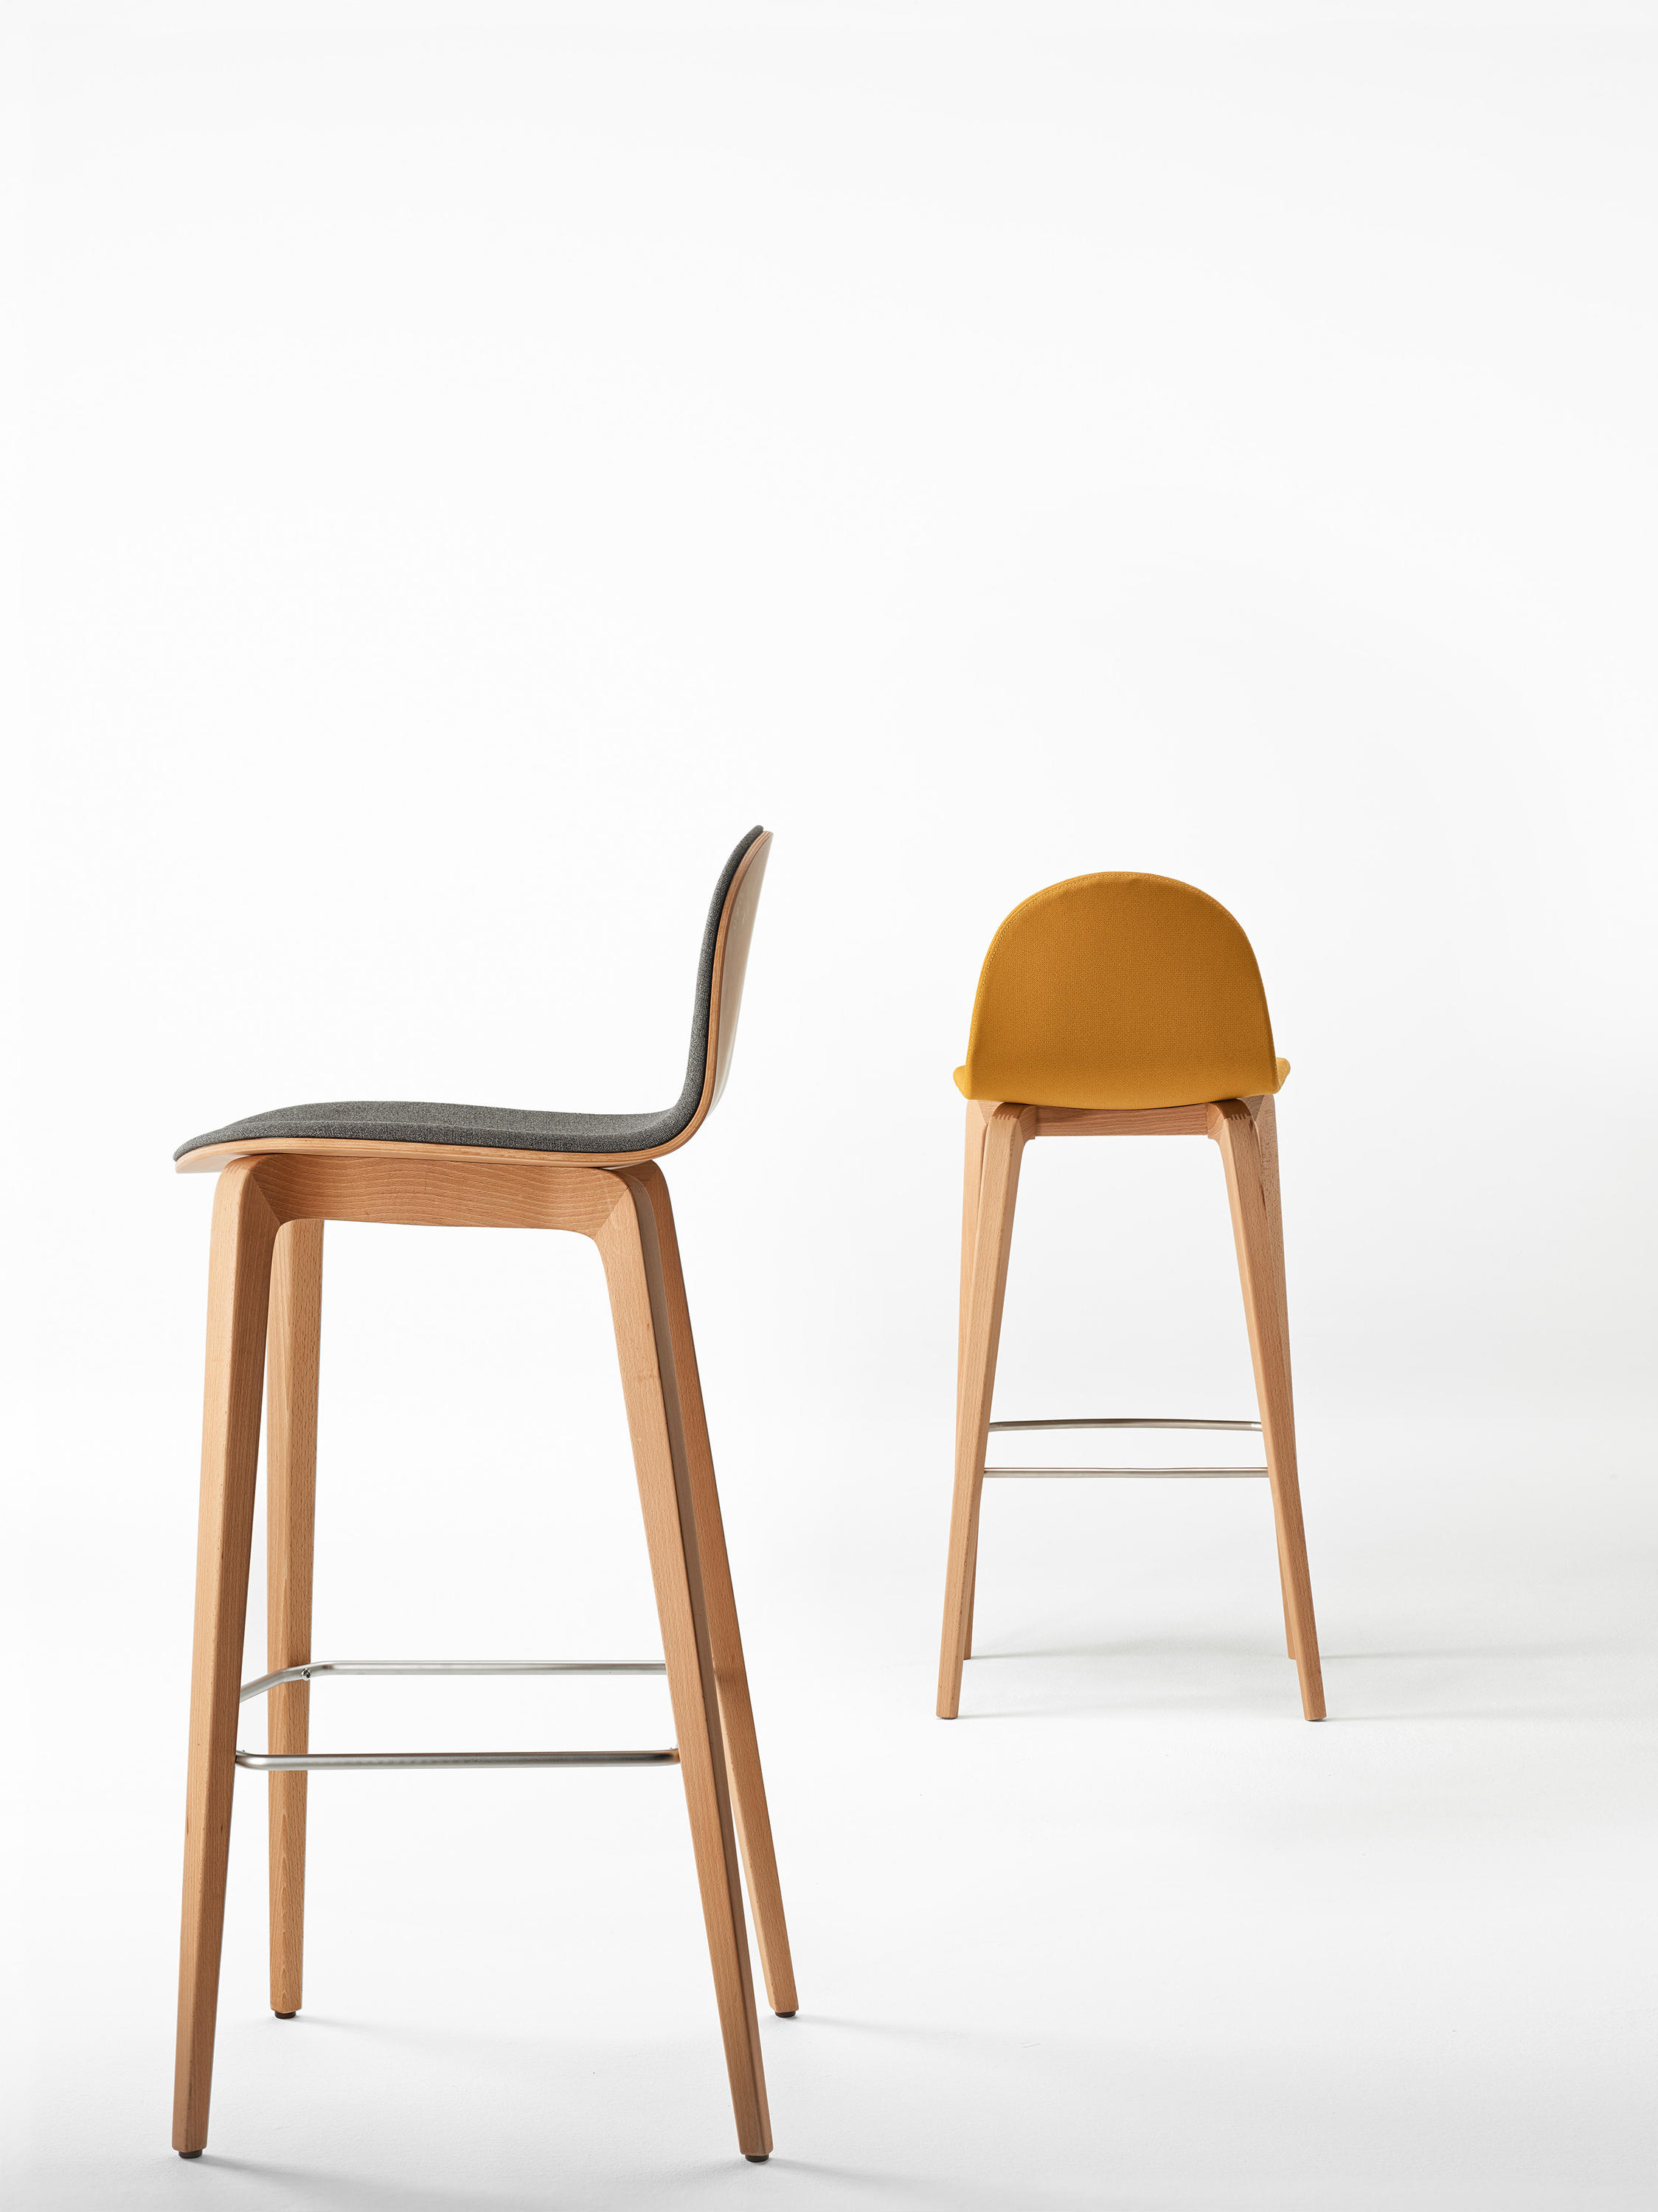 Brilliant Bob Wood Chair Chairs From Ondarreta Architonic Creativecarmelina Interior Chair Design Creativecarmelinacom